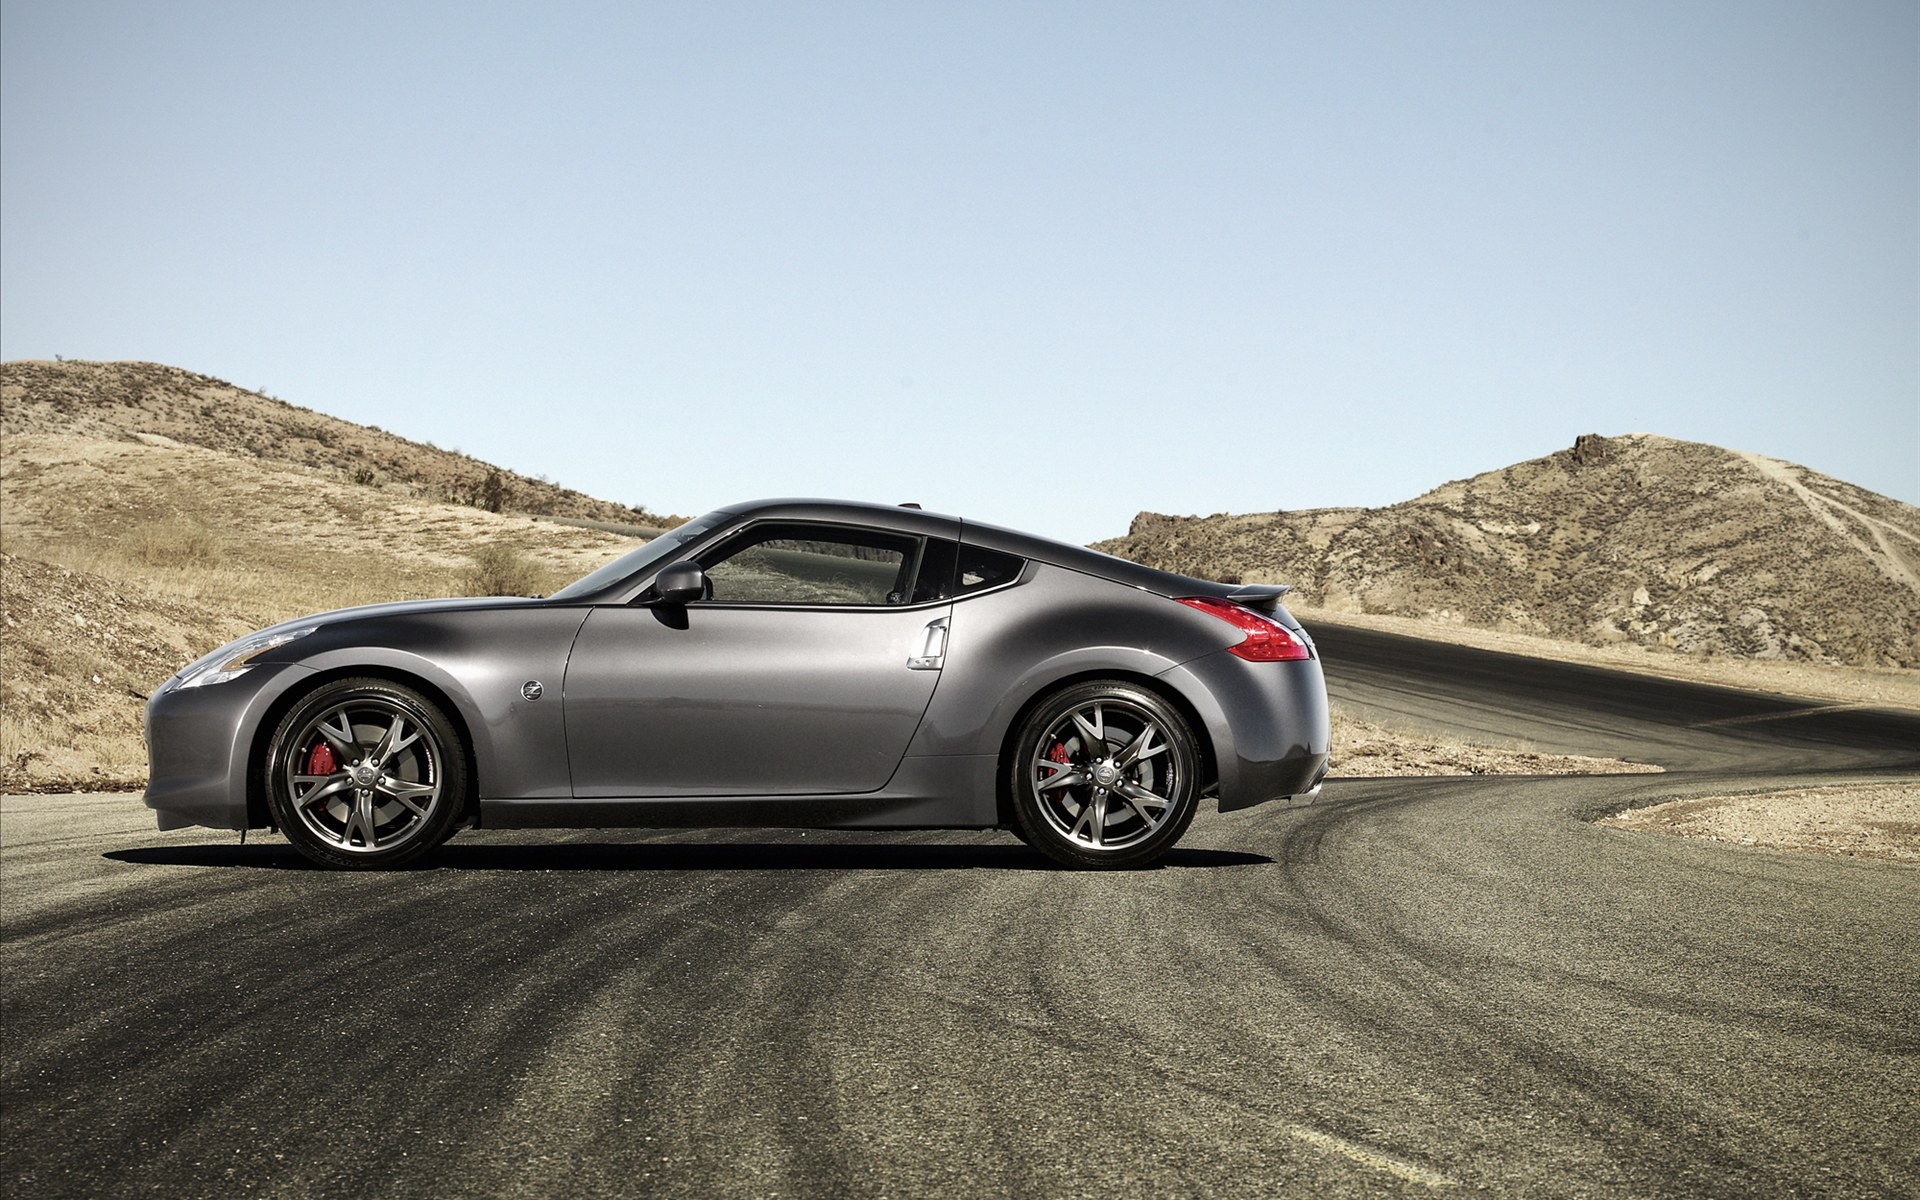 Nissan 370z Wallpaper 1080p - Wickedsa com